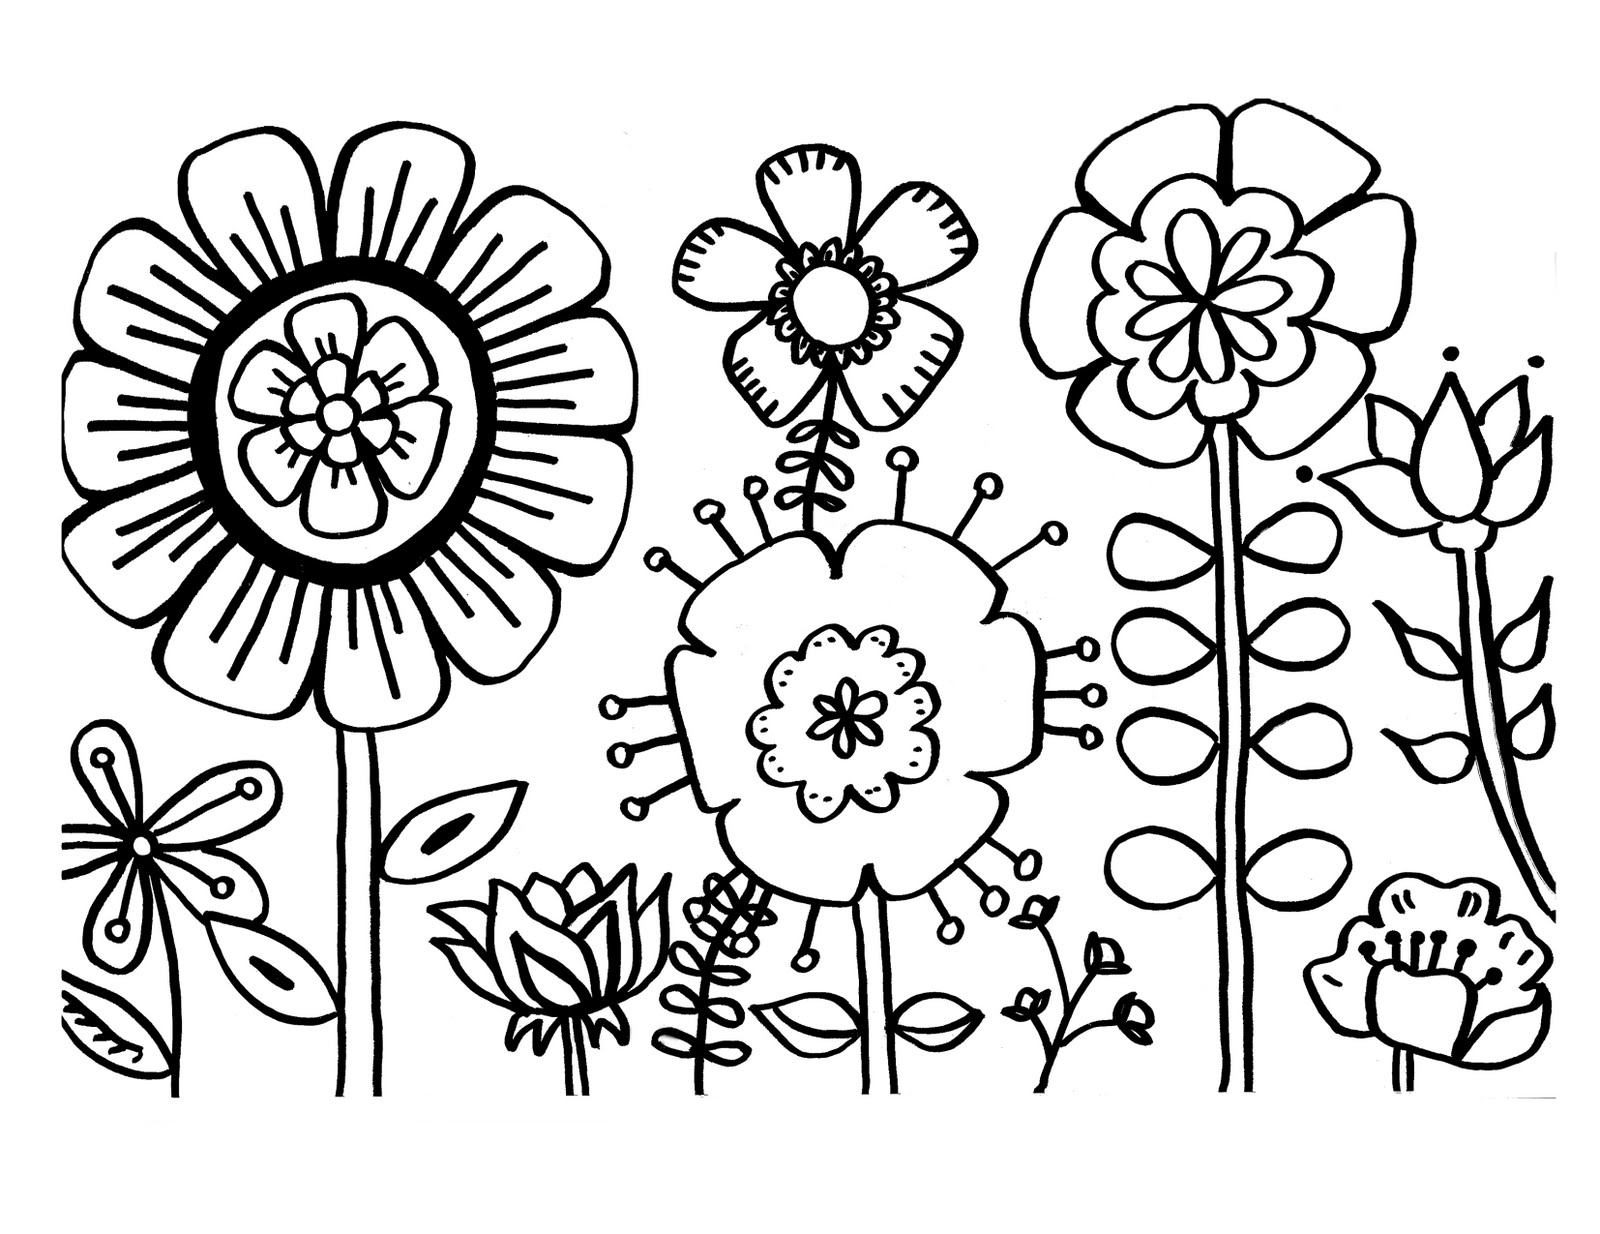 childrens coloring pages flowers free printable flower coloring pages for kids best childrens coloring flowers pages